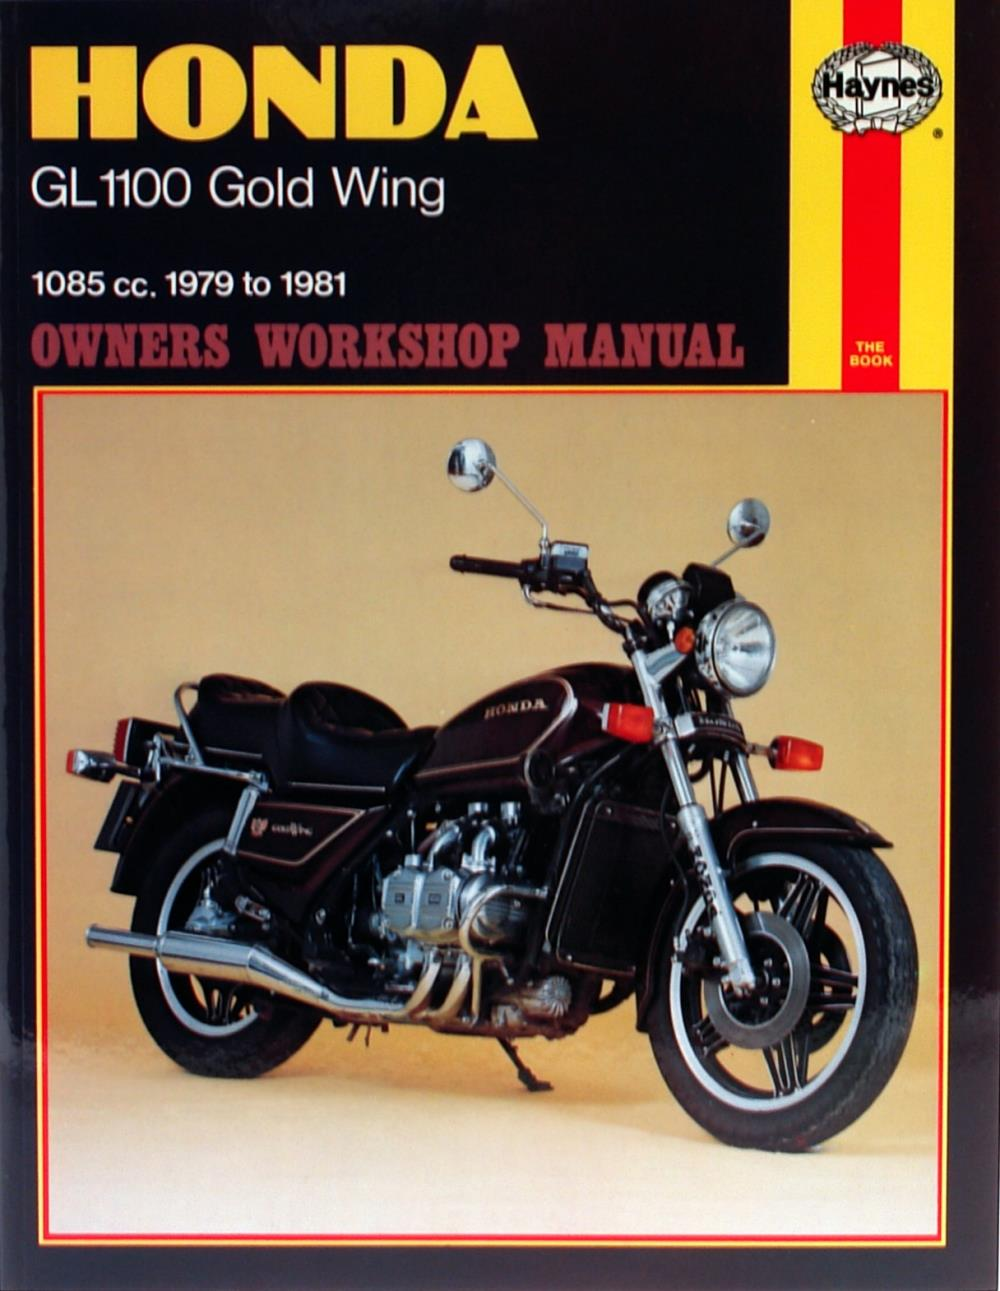 manual haynes for 1983 honda gl 1100 id gold wing interstate ebay rh ebay co uk 1987 Honda Goldwing 1986 Honda Goldwing